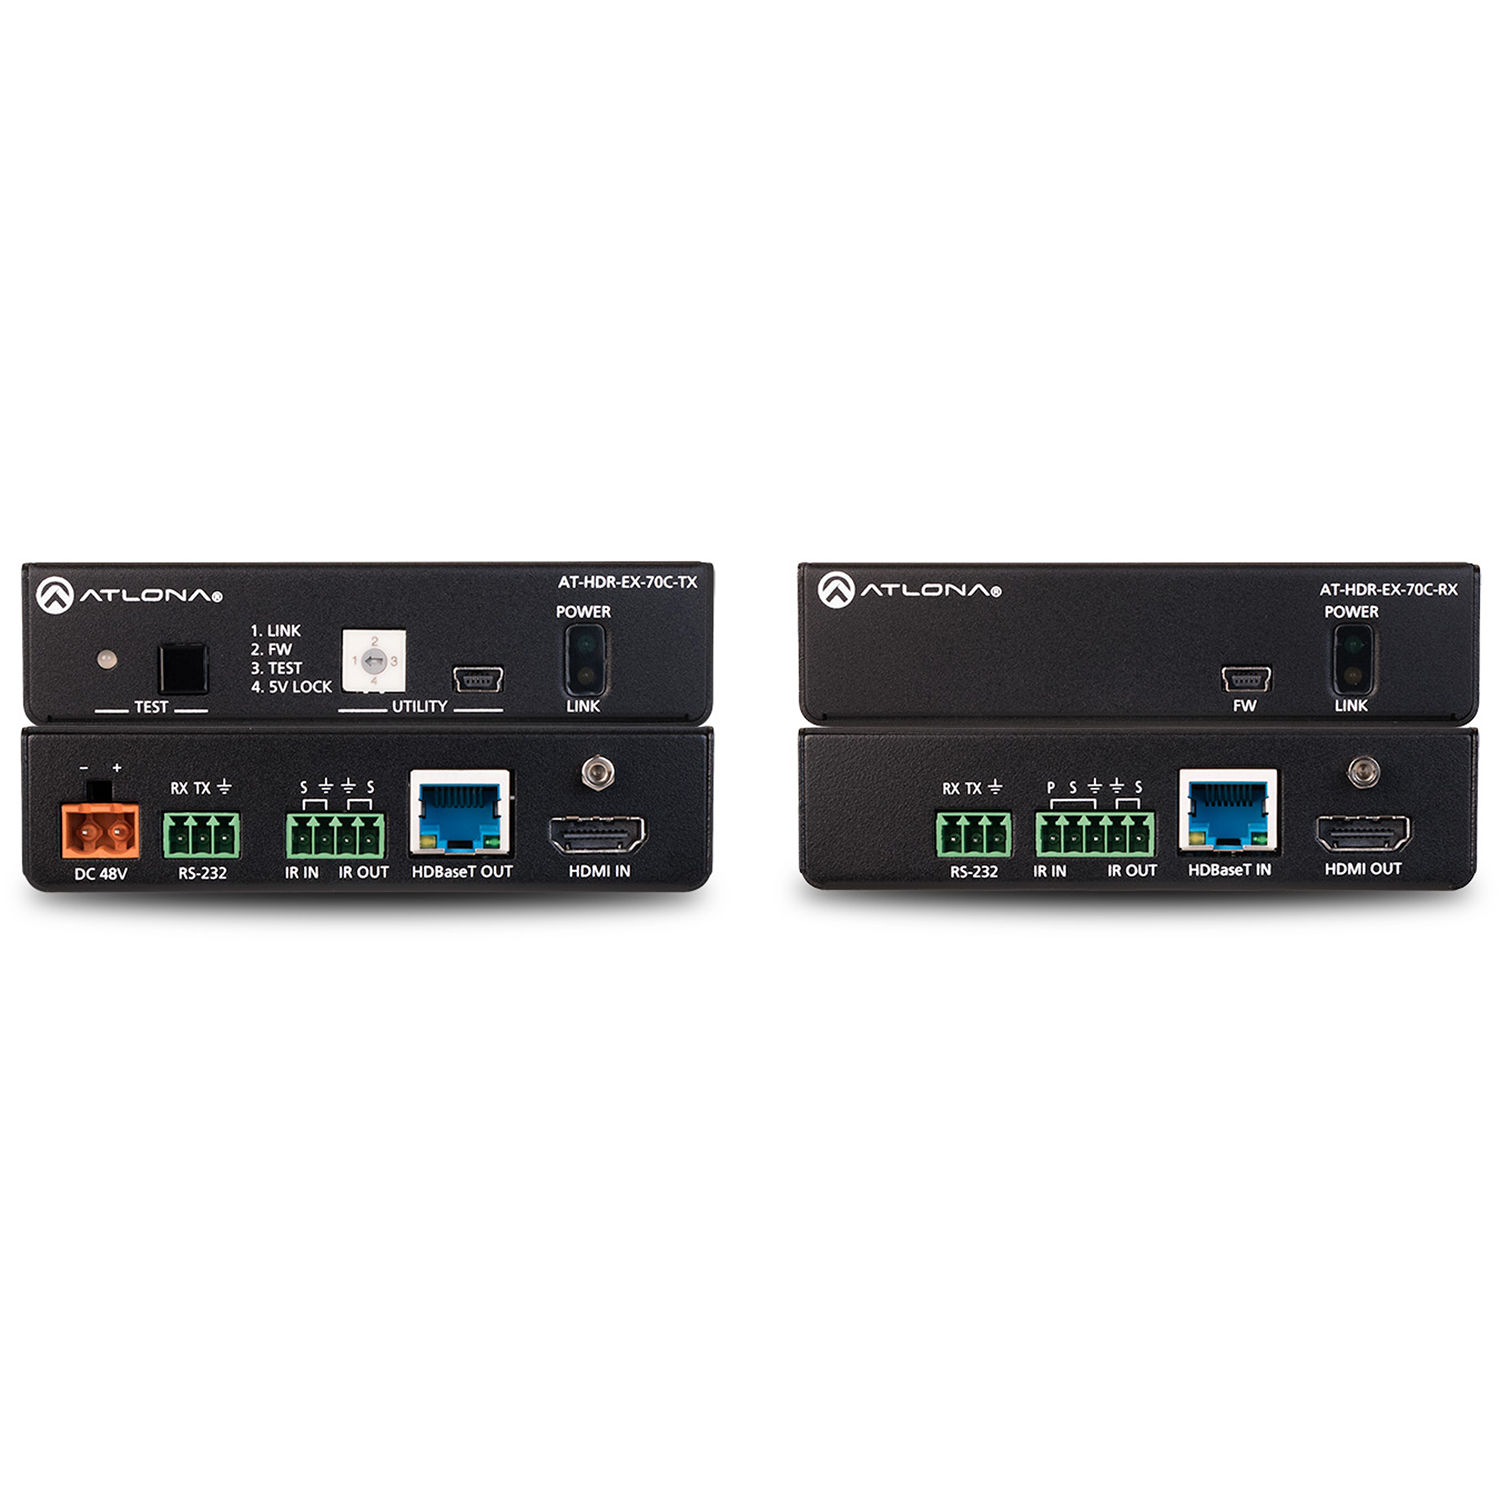 Atlona 4k Hdr Transmitter And Receiver Set At Ex 70c Kit Bh Design Your Circuit Part Iv Ir Electronics Hobby With Rs 232 Poe